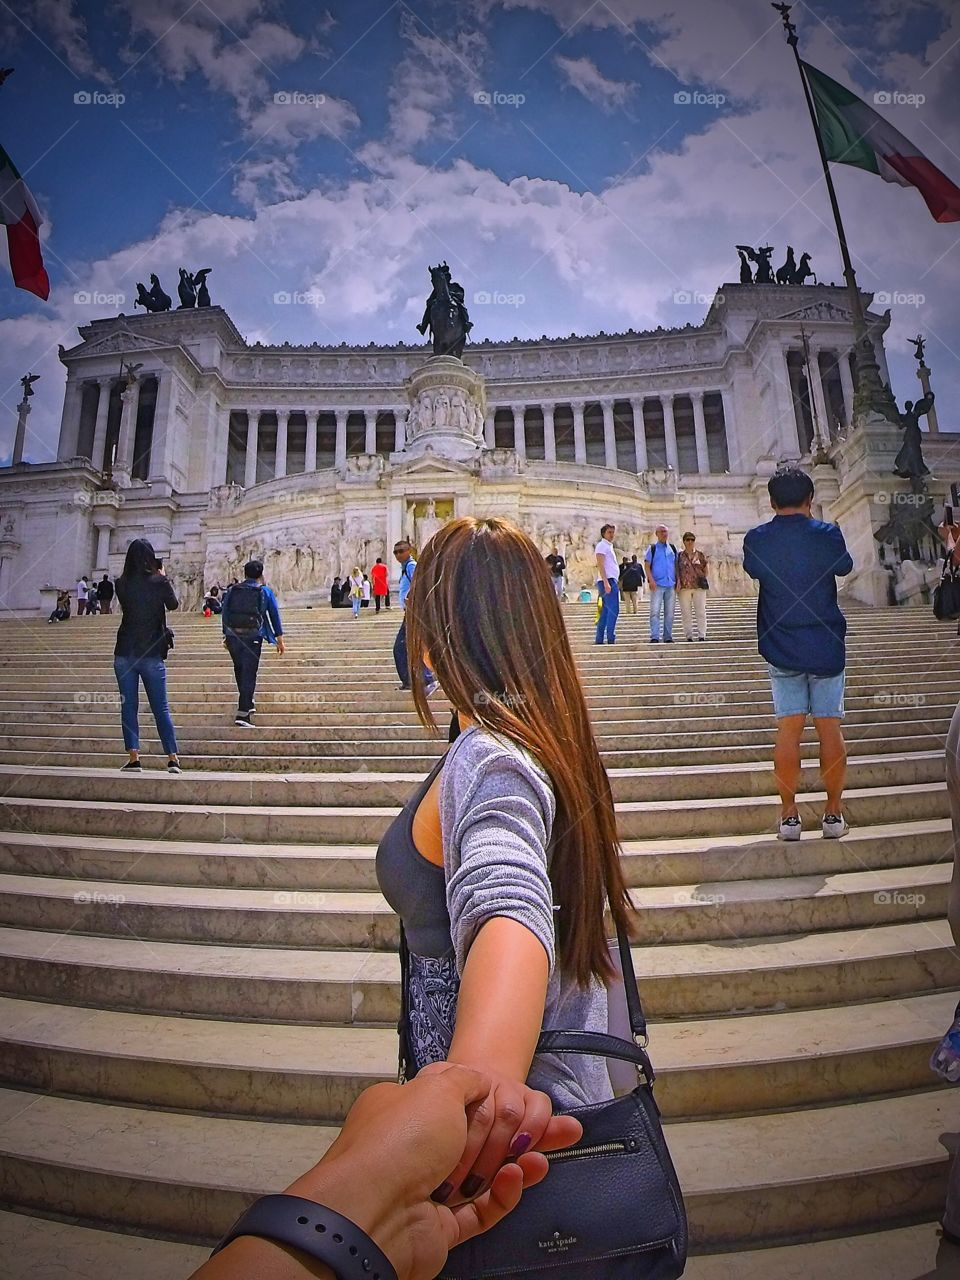 #followmeto the National Monument of Victor Emmanuel II in Roma, Italy